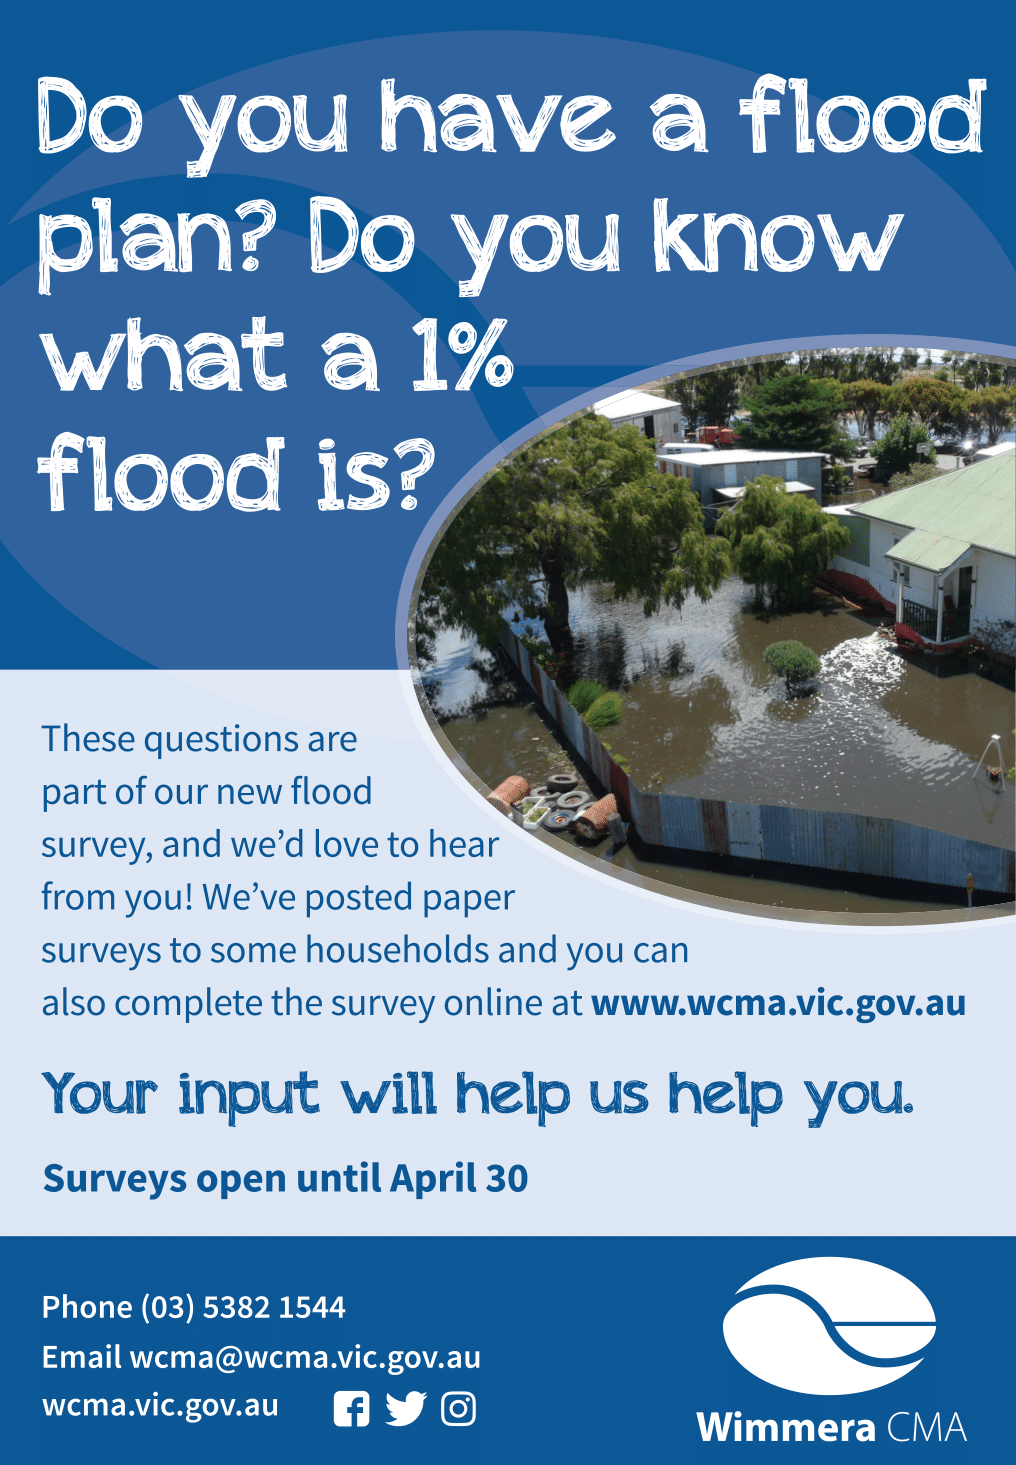 Wimmera CMA Flood Survey